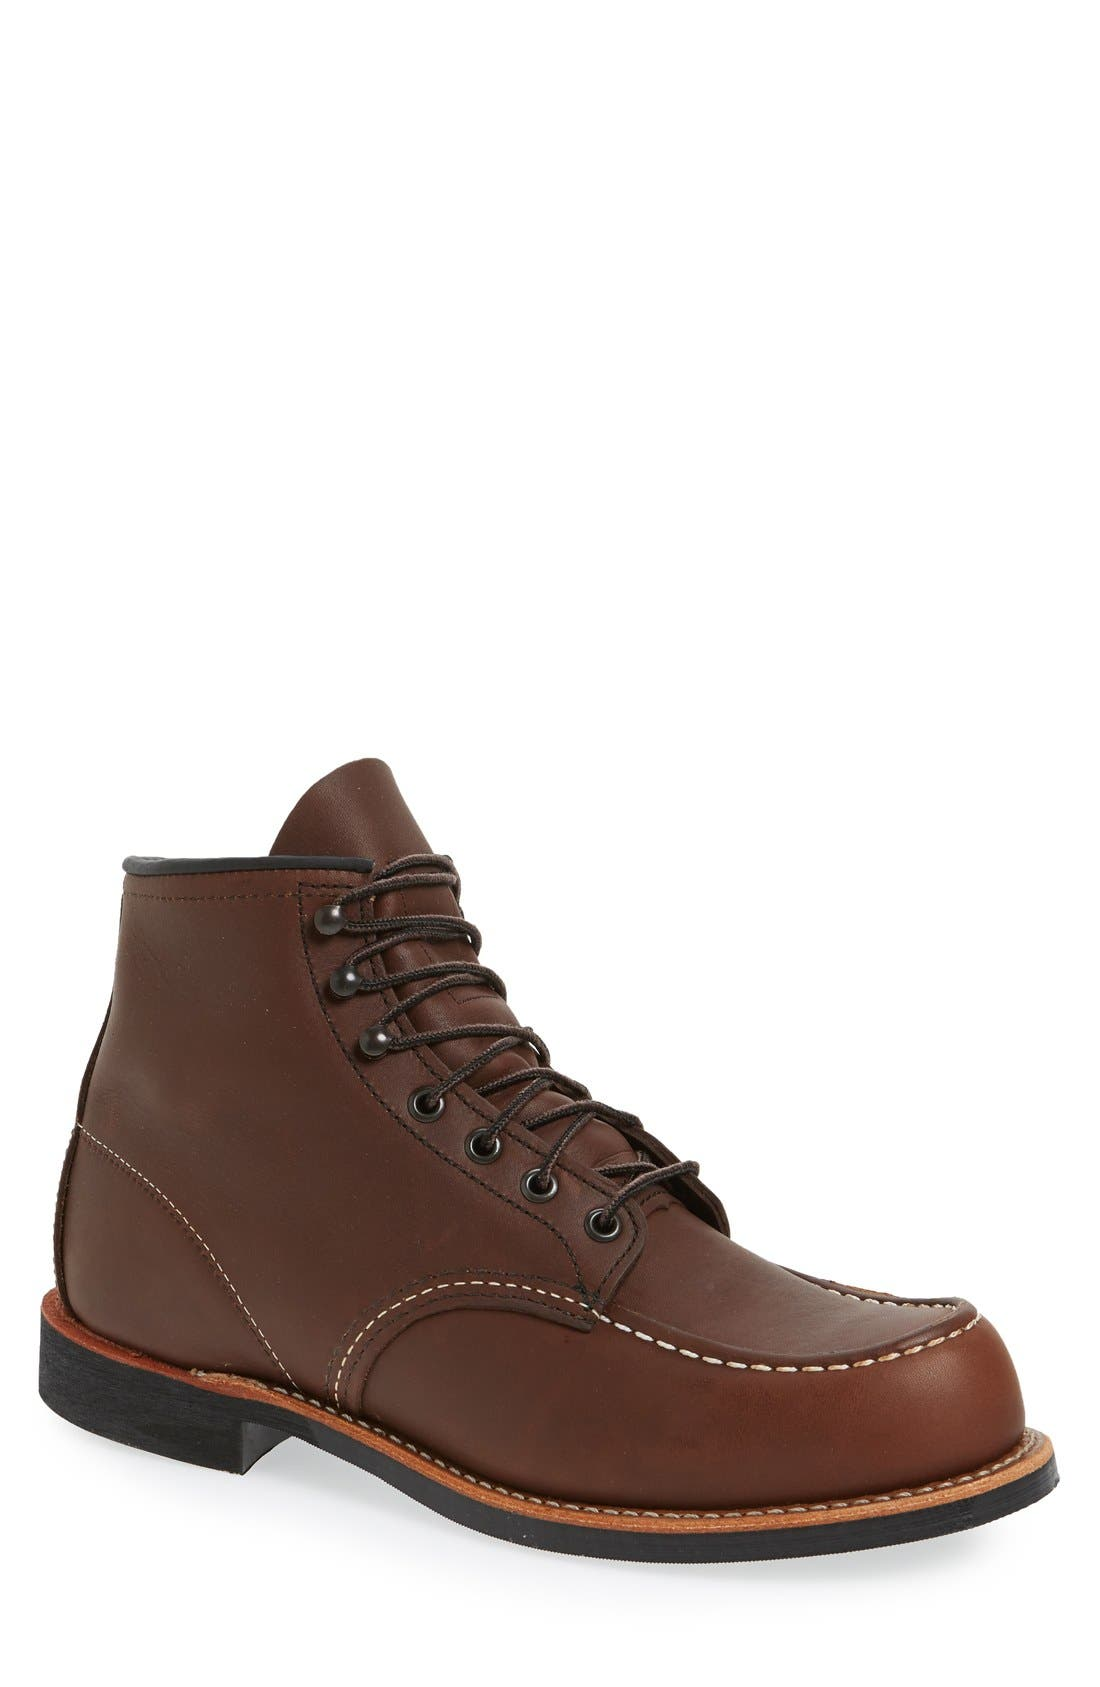 'Cooper' Moc Toe Boot,                         Main,                         color, Amber Leather